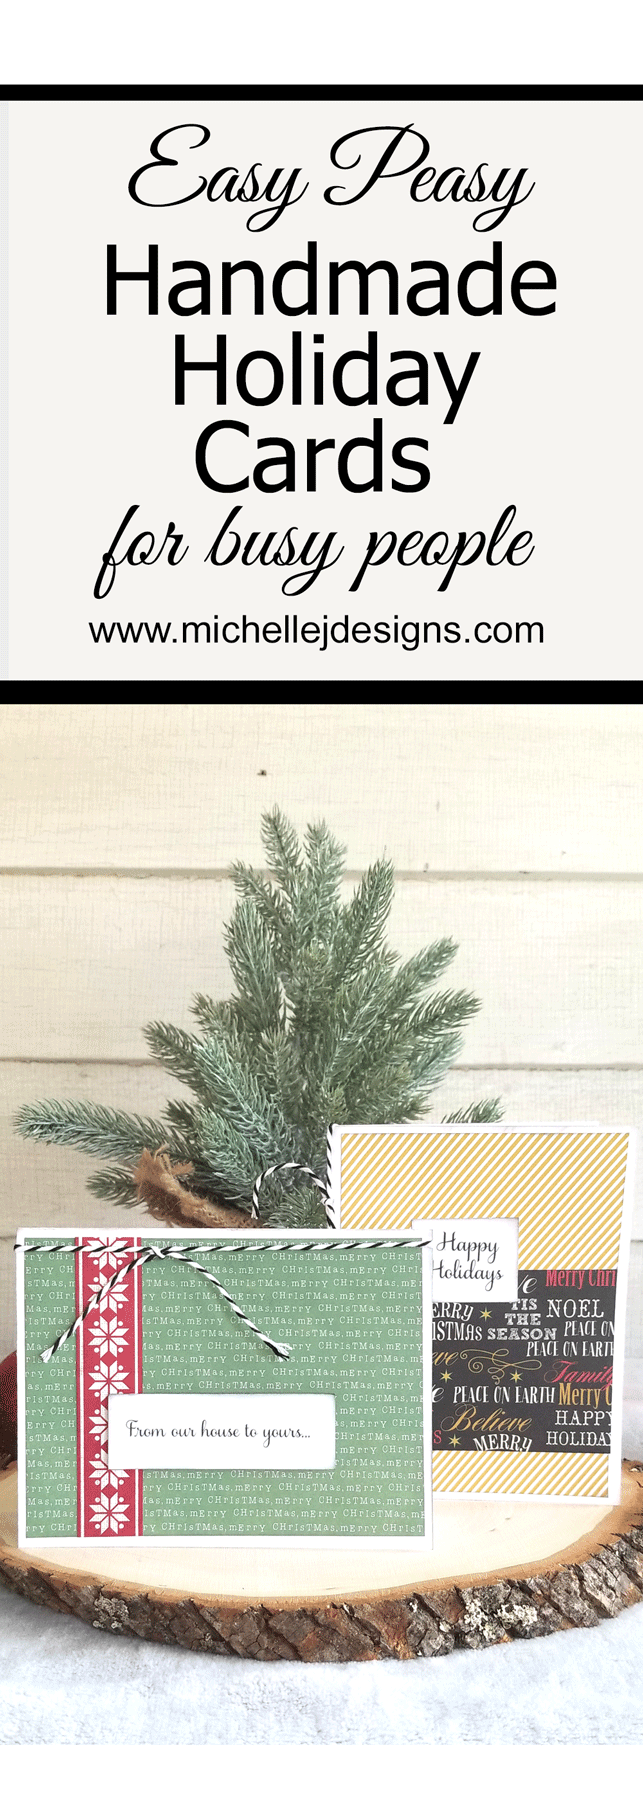 Everyone is busy during the holidays but it doesn't mean you can't make handmade cards for your friends and family. Create simple, easy cards in a few minutes! www.michellejdesigns.com